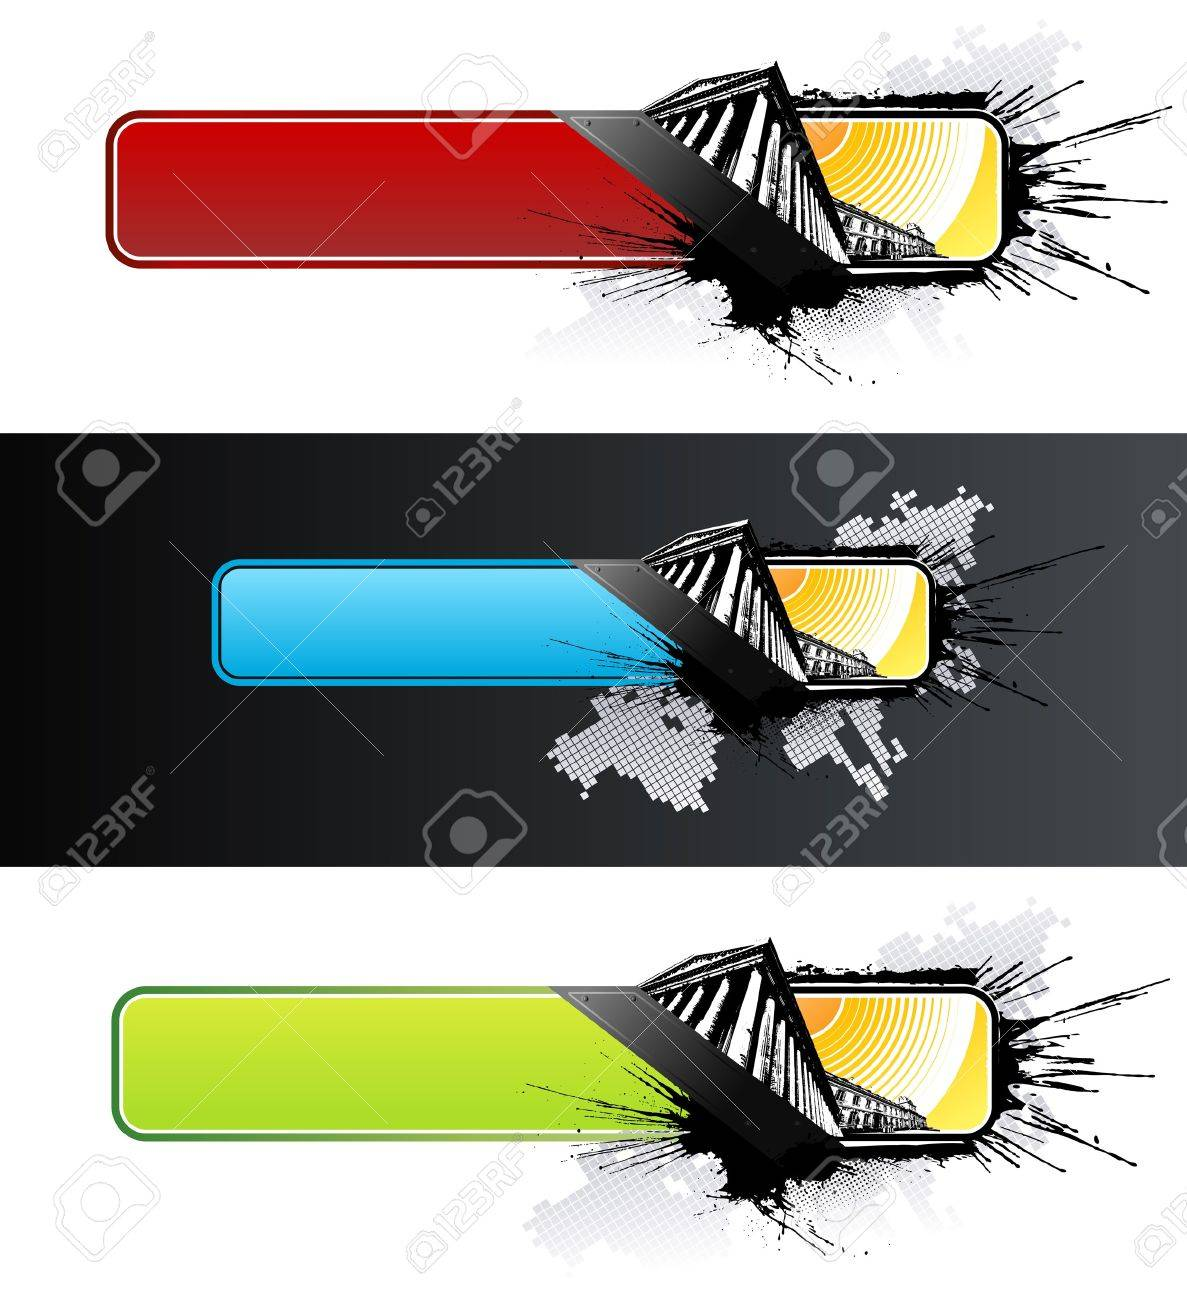 illustration of three differently colored historic urban grunge splatter banners with world map squared art background. Stock Vector - 6953178